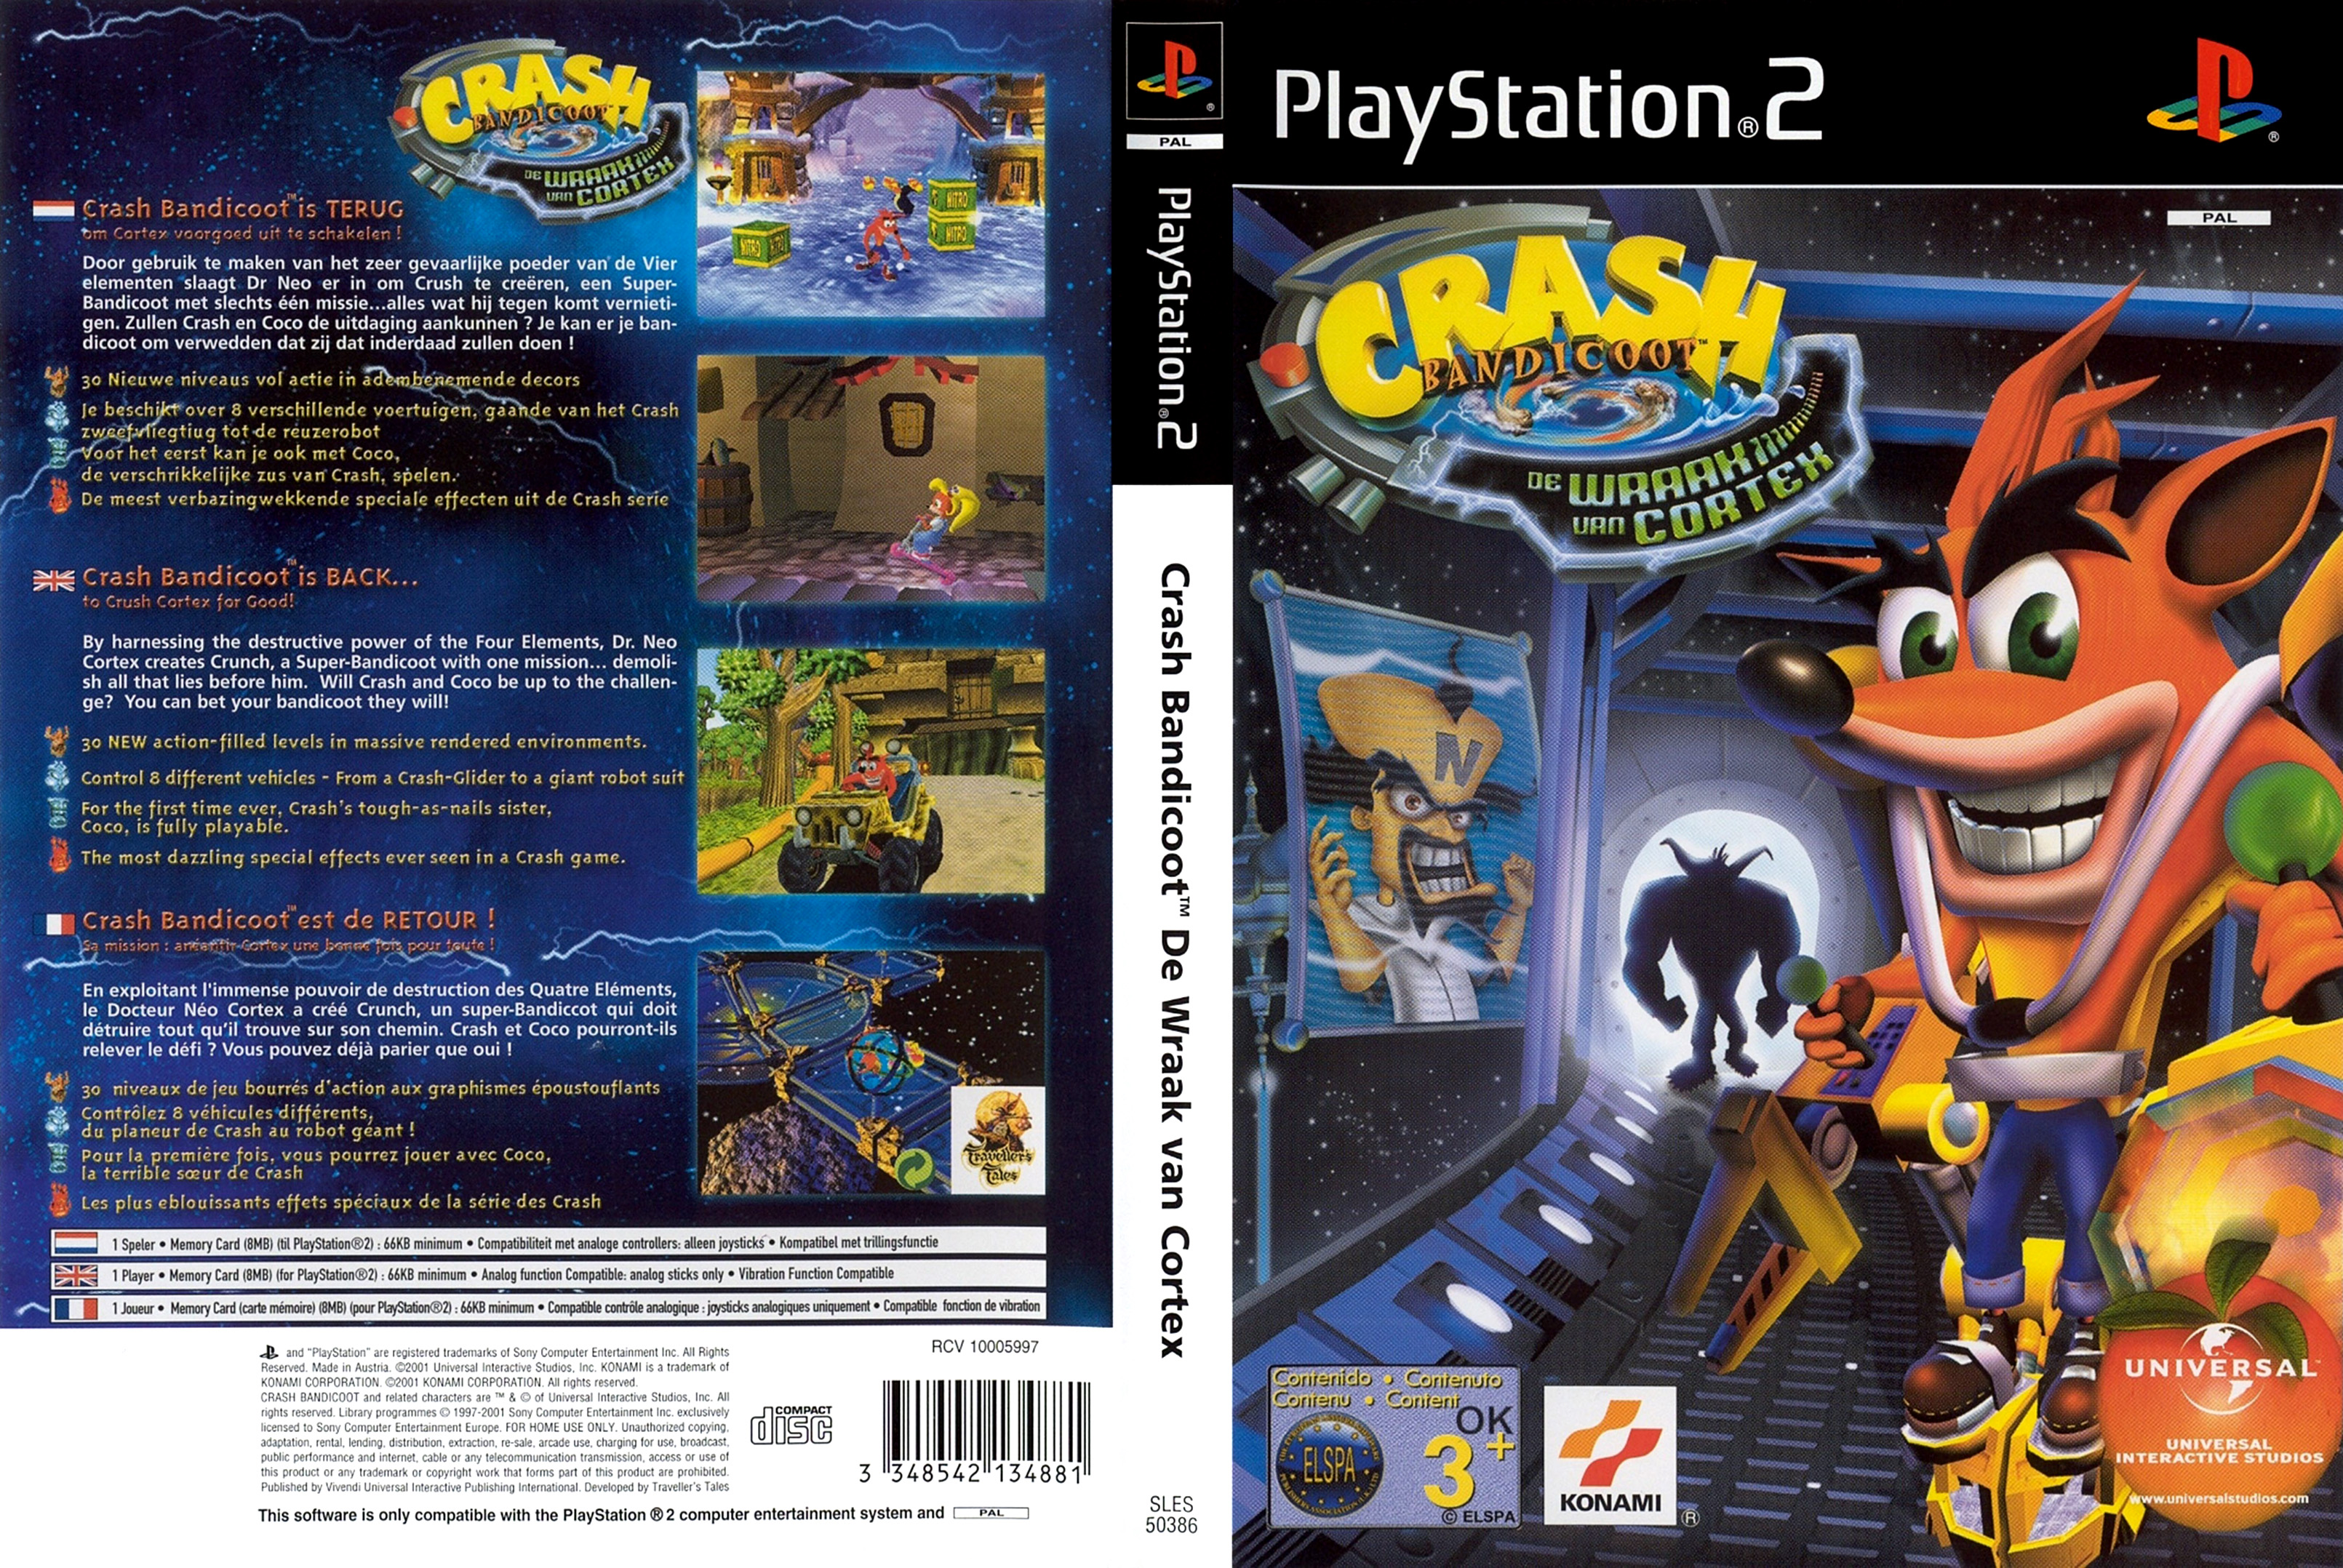 CRASH BANDICOOT - THE WRATH OF CORTEX (PAL) - FRONT